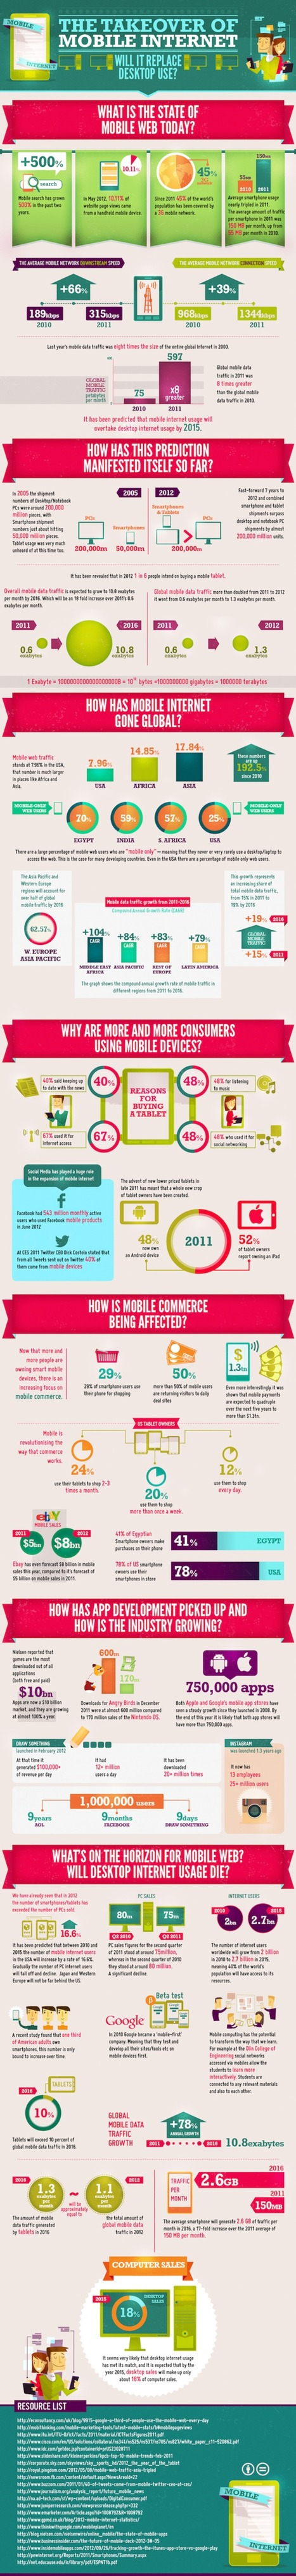 Will mobile internet replace desktop? [infographic] | New Media and Technology | Scoop.it